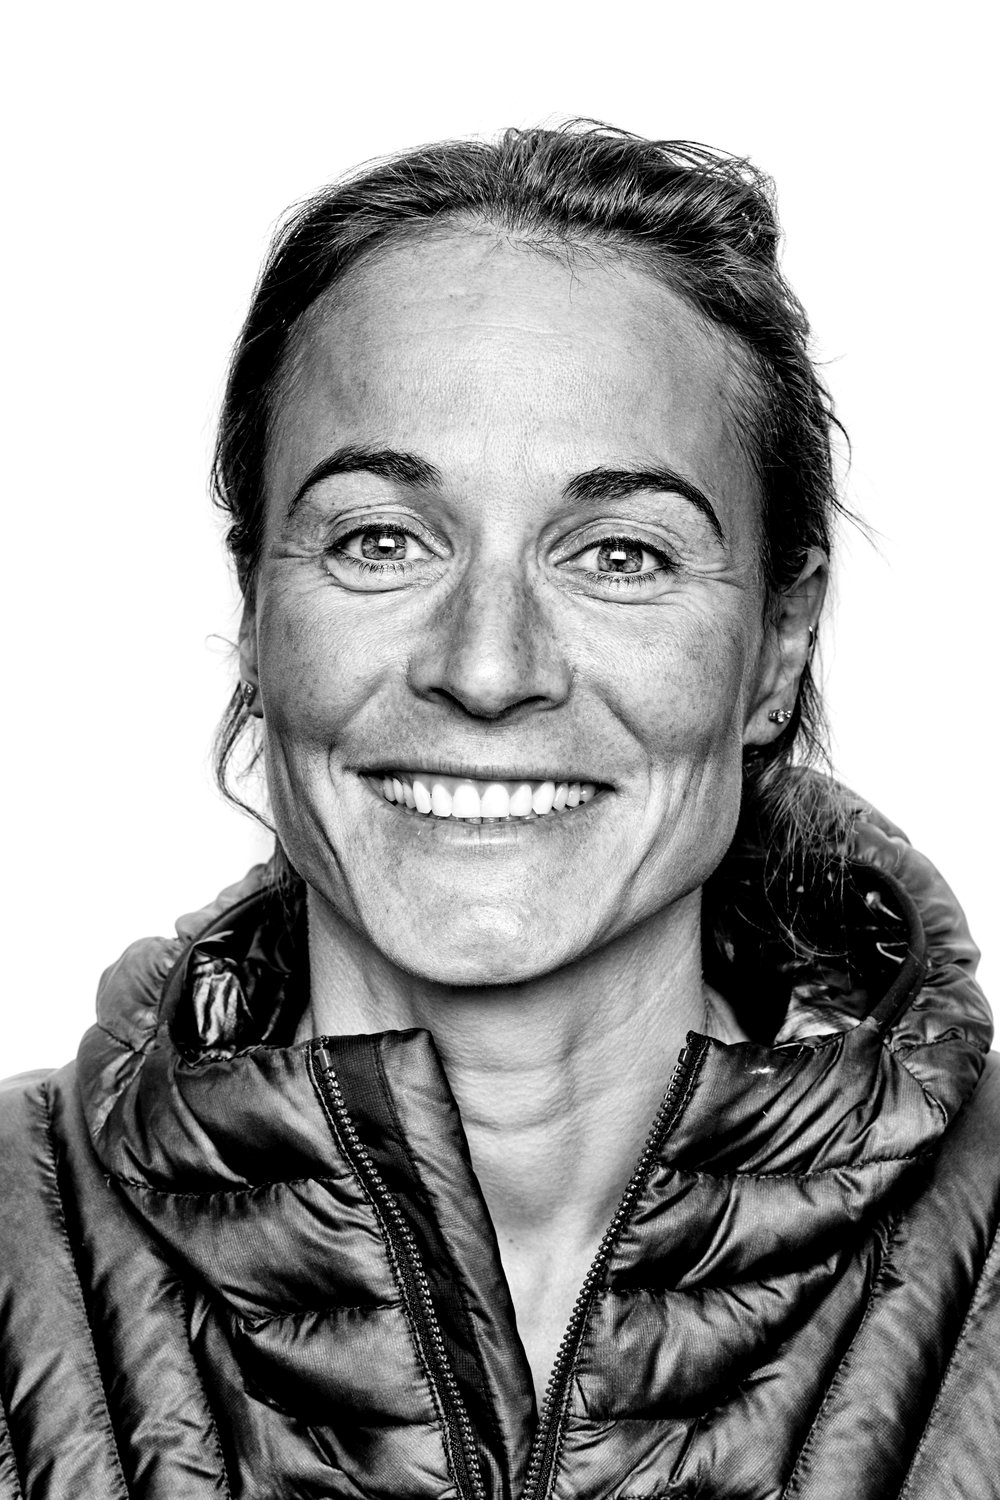 """<a href=""""/hilaree-oneil"""">Hilaree O'Neil<strong>Professional Ski Mountaineer</strong></a>"""